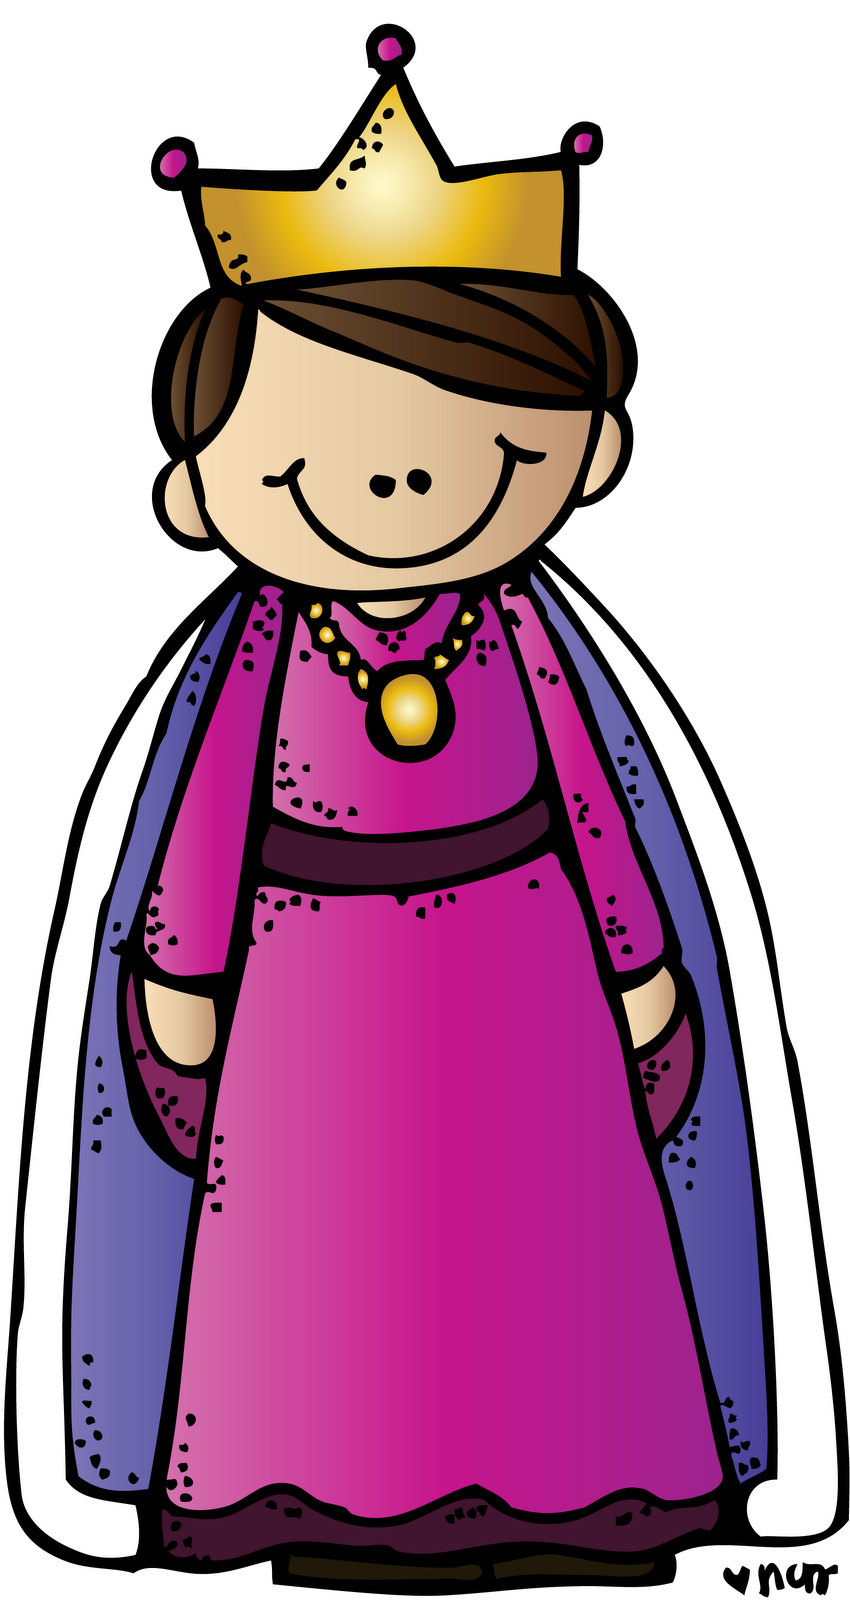 Free clipart of a queen svg royalty free library Queen Clipart | Free Download Clip Art | Free Clip Art | on ... svg royalty free library